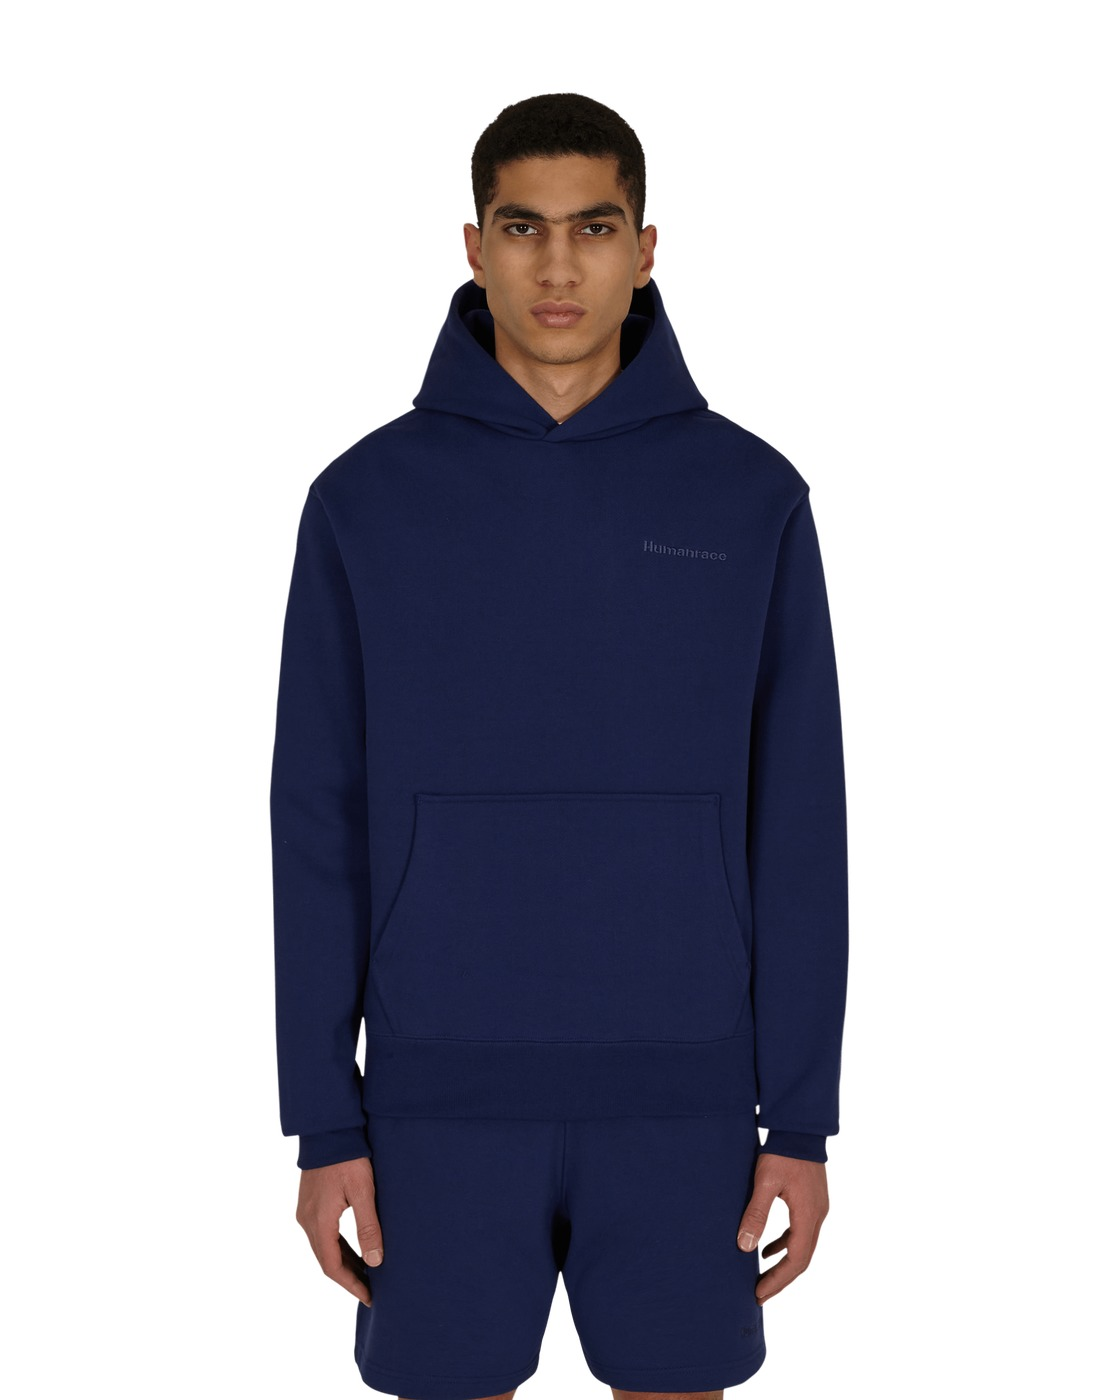 Photo: Adidas Originals Pharrell Williams Basics Hooded Sweatshirt Night Sky